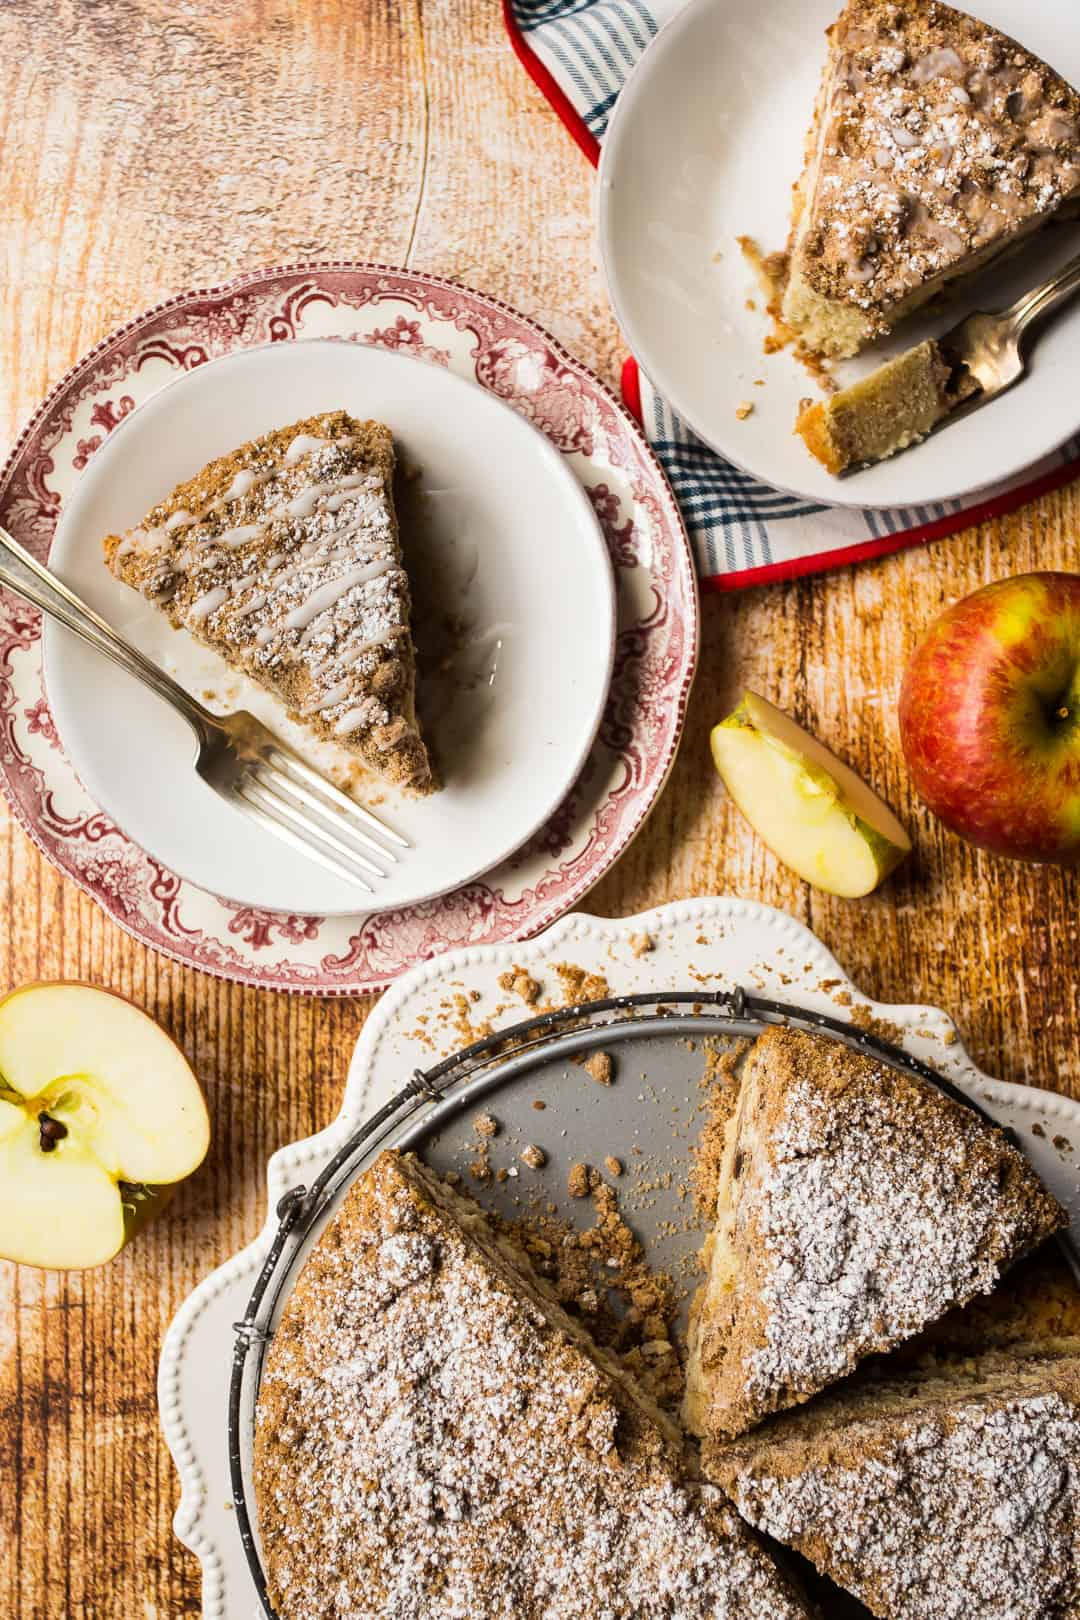 Slices of apple cinnamon coffee cake on plates with fresh apples.